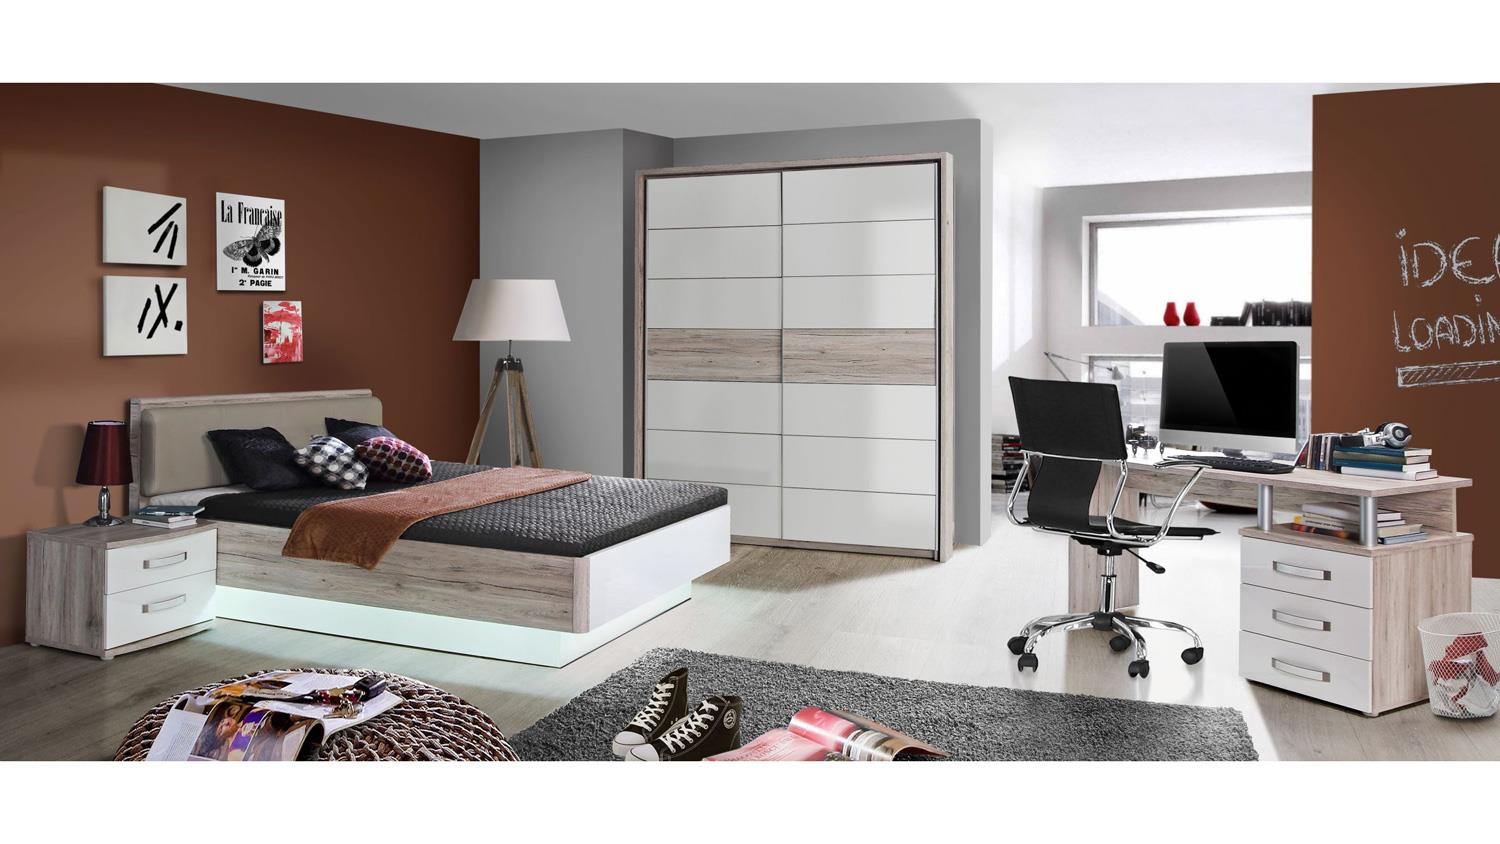 jugendzimmer rondino komplett set in sandeiche und wei. Black Bedroom Furniture Sets. Home Design Ideas